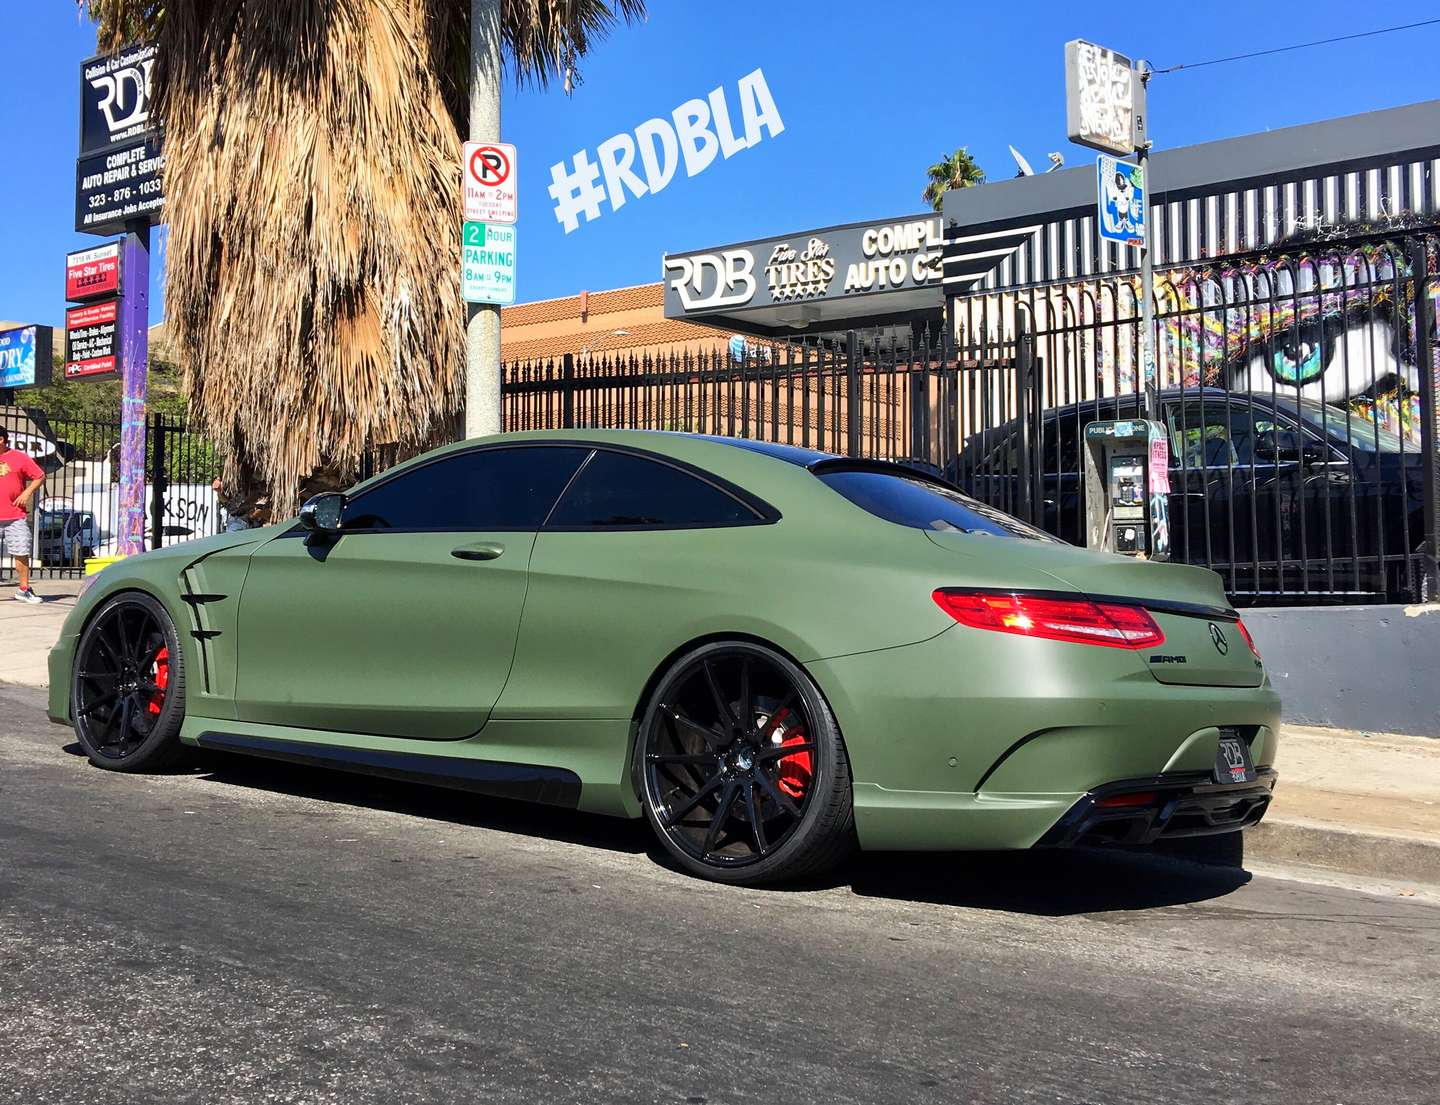 Military Green Wald S63 Coupe Mercedes Rdb